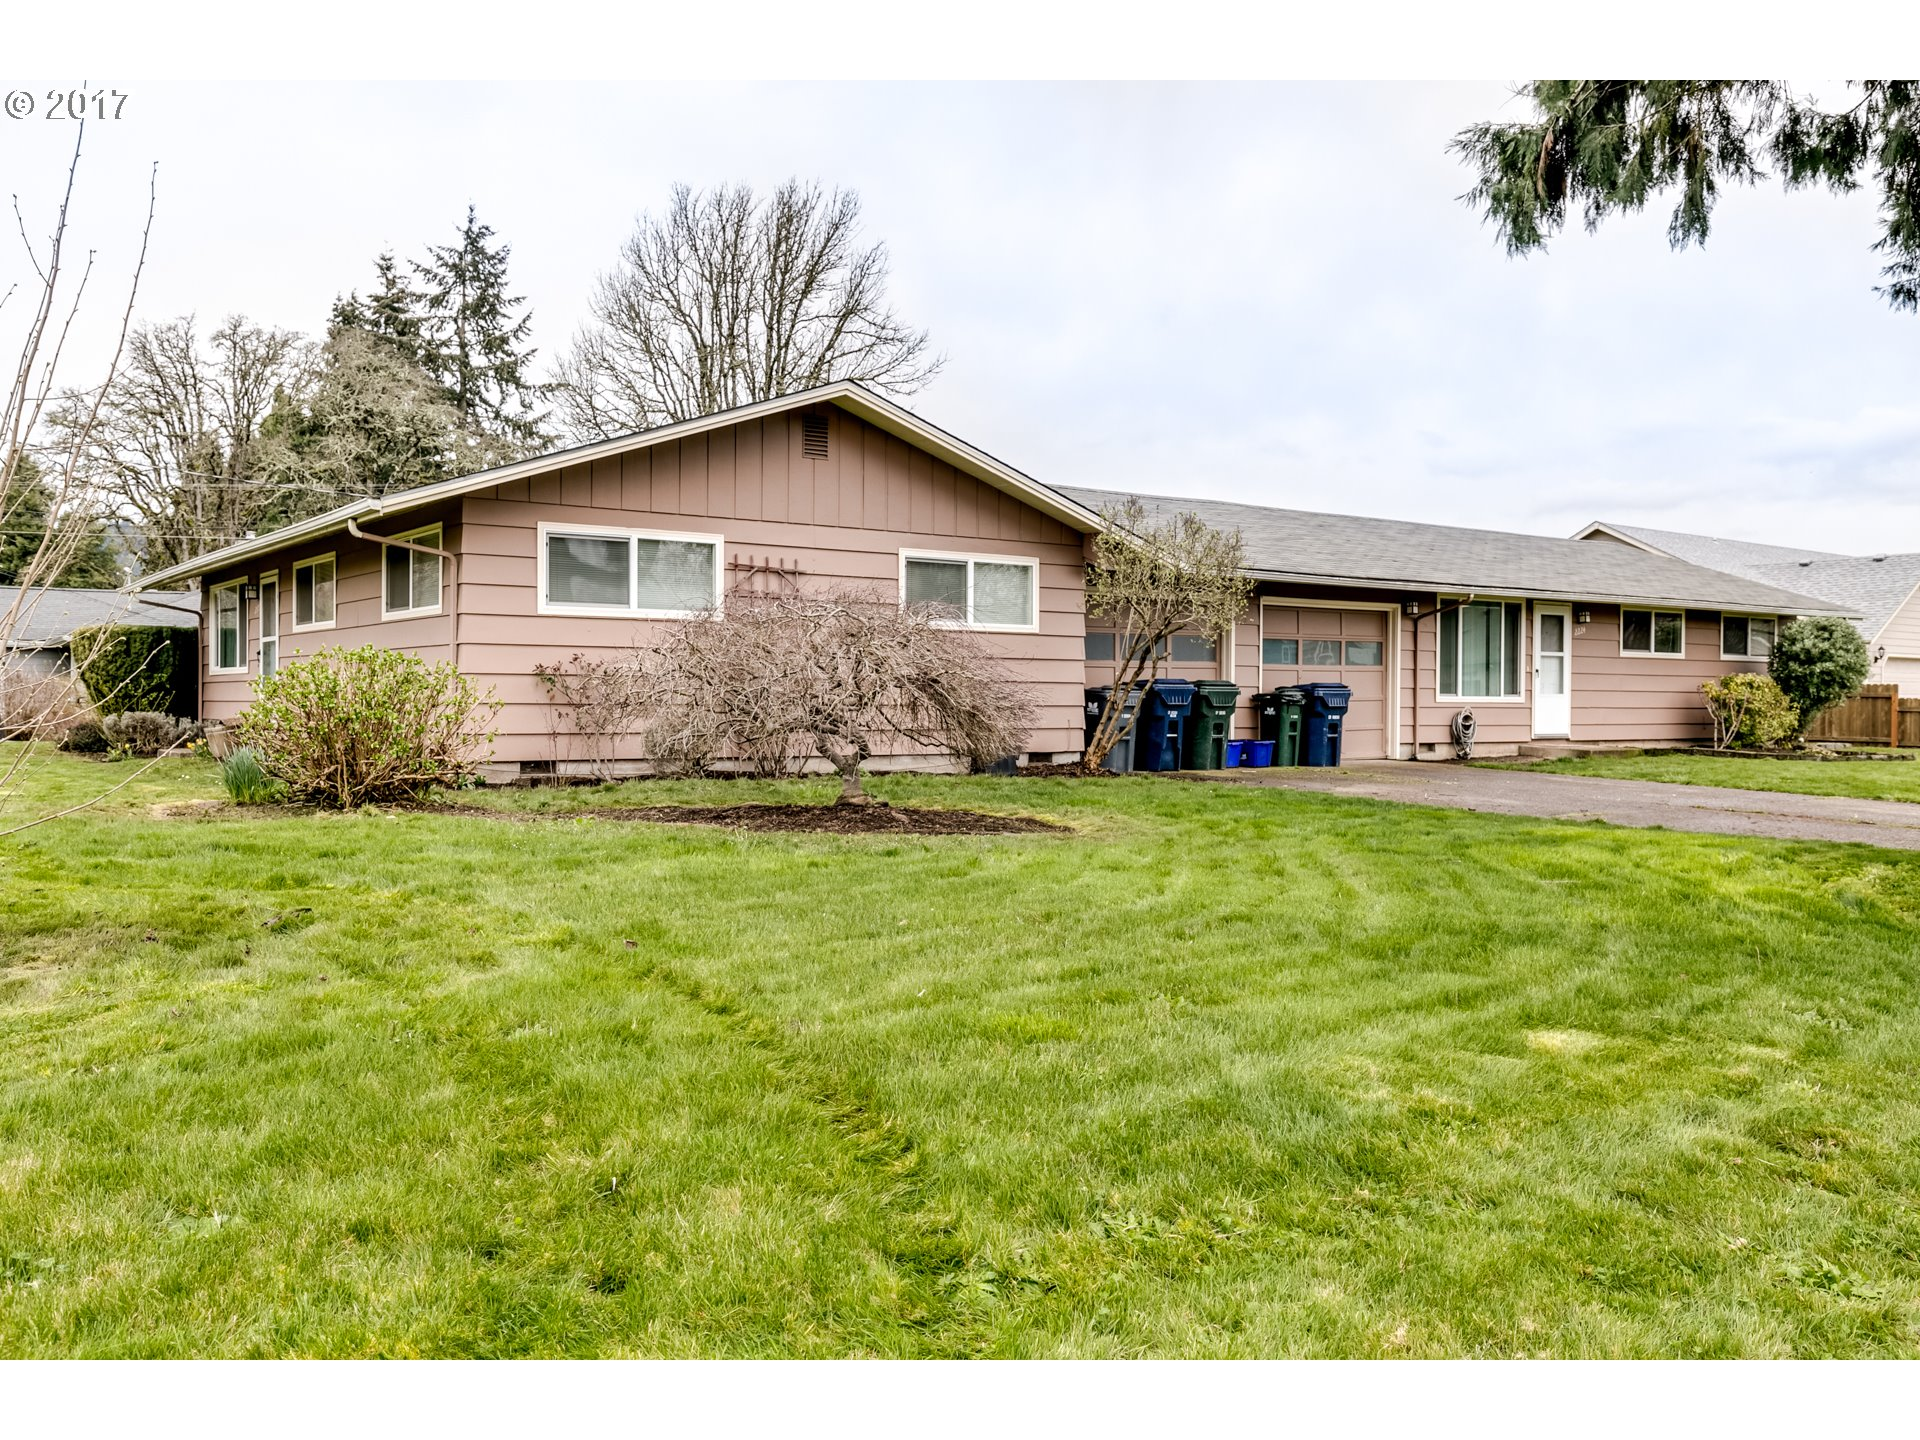 2355 CORRAL DR, Springfield, OR 97477